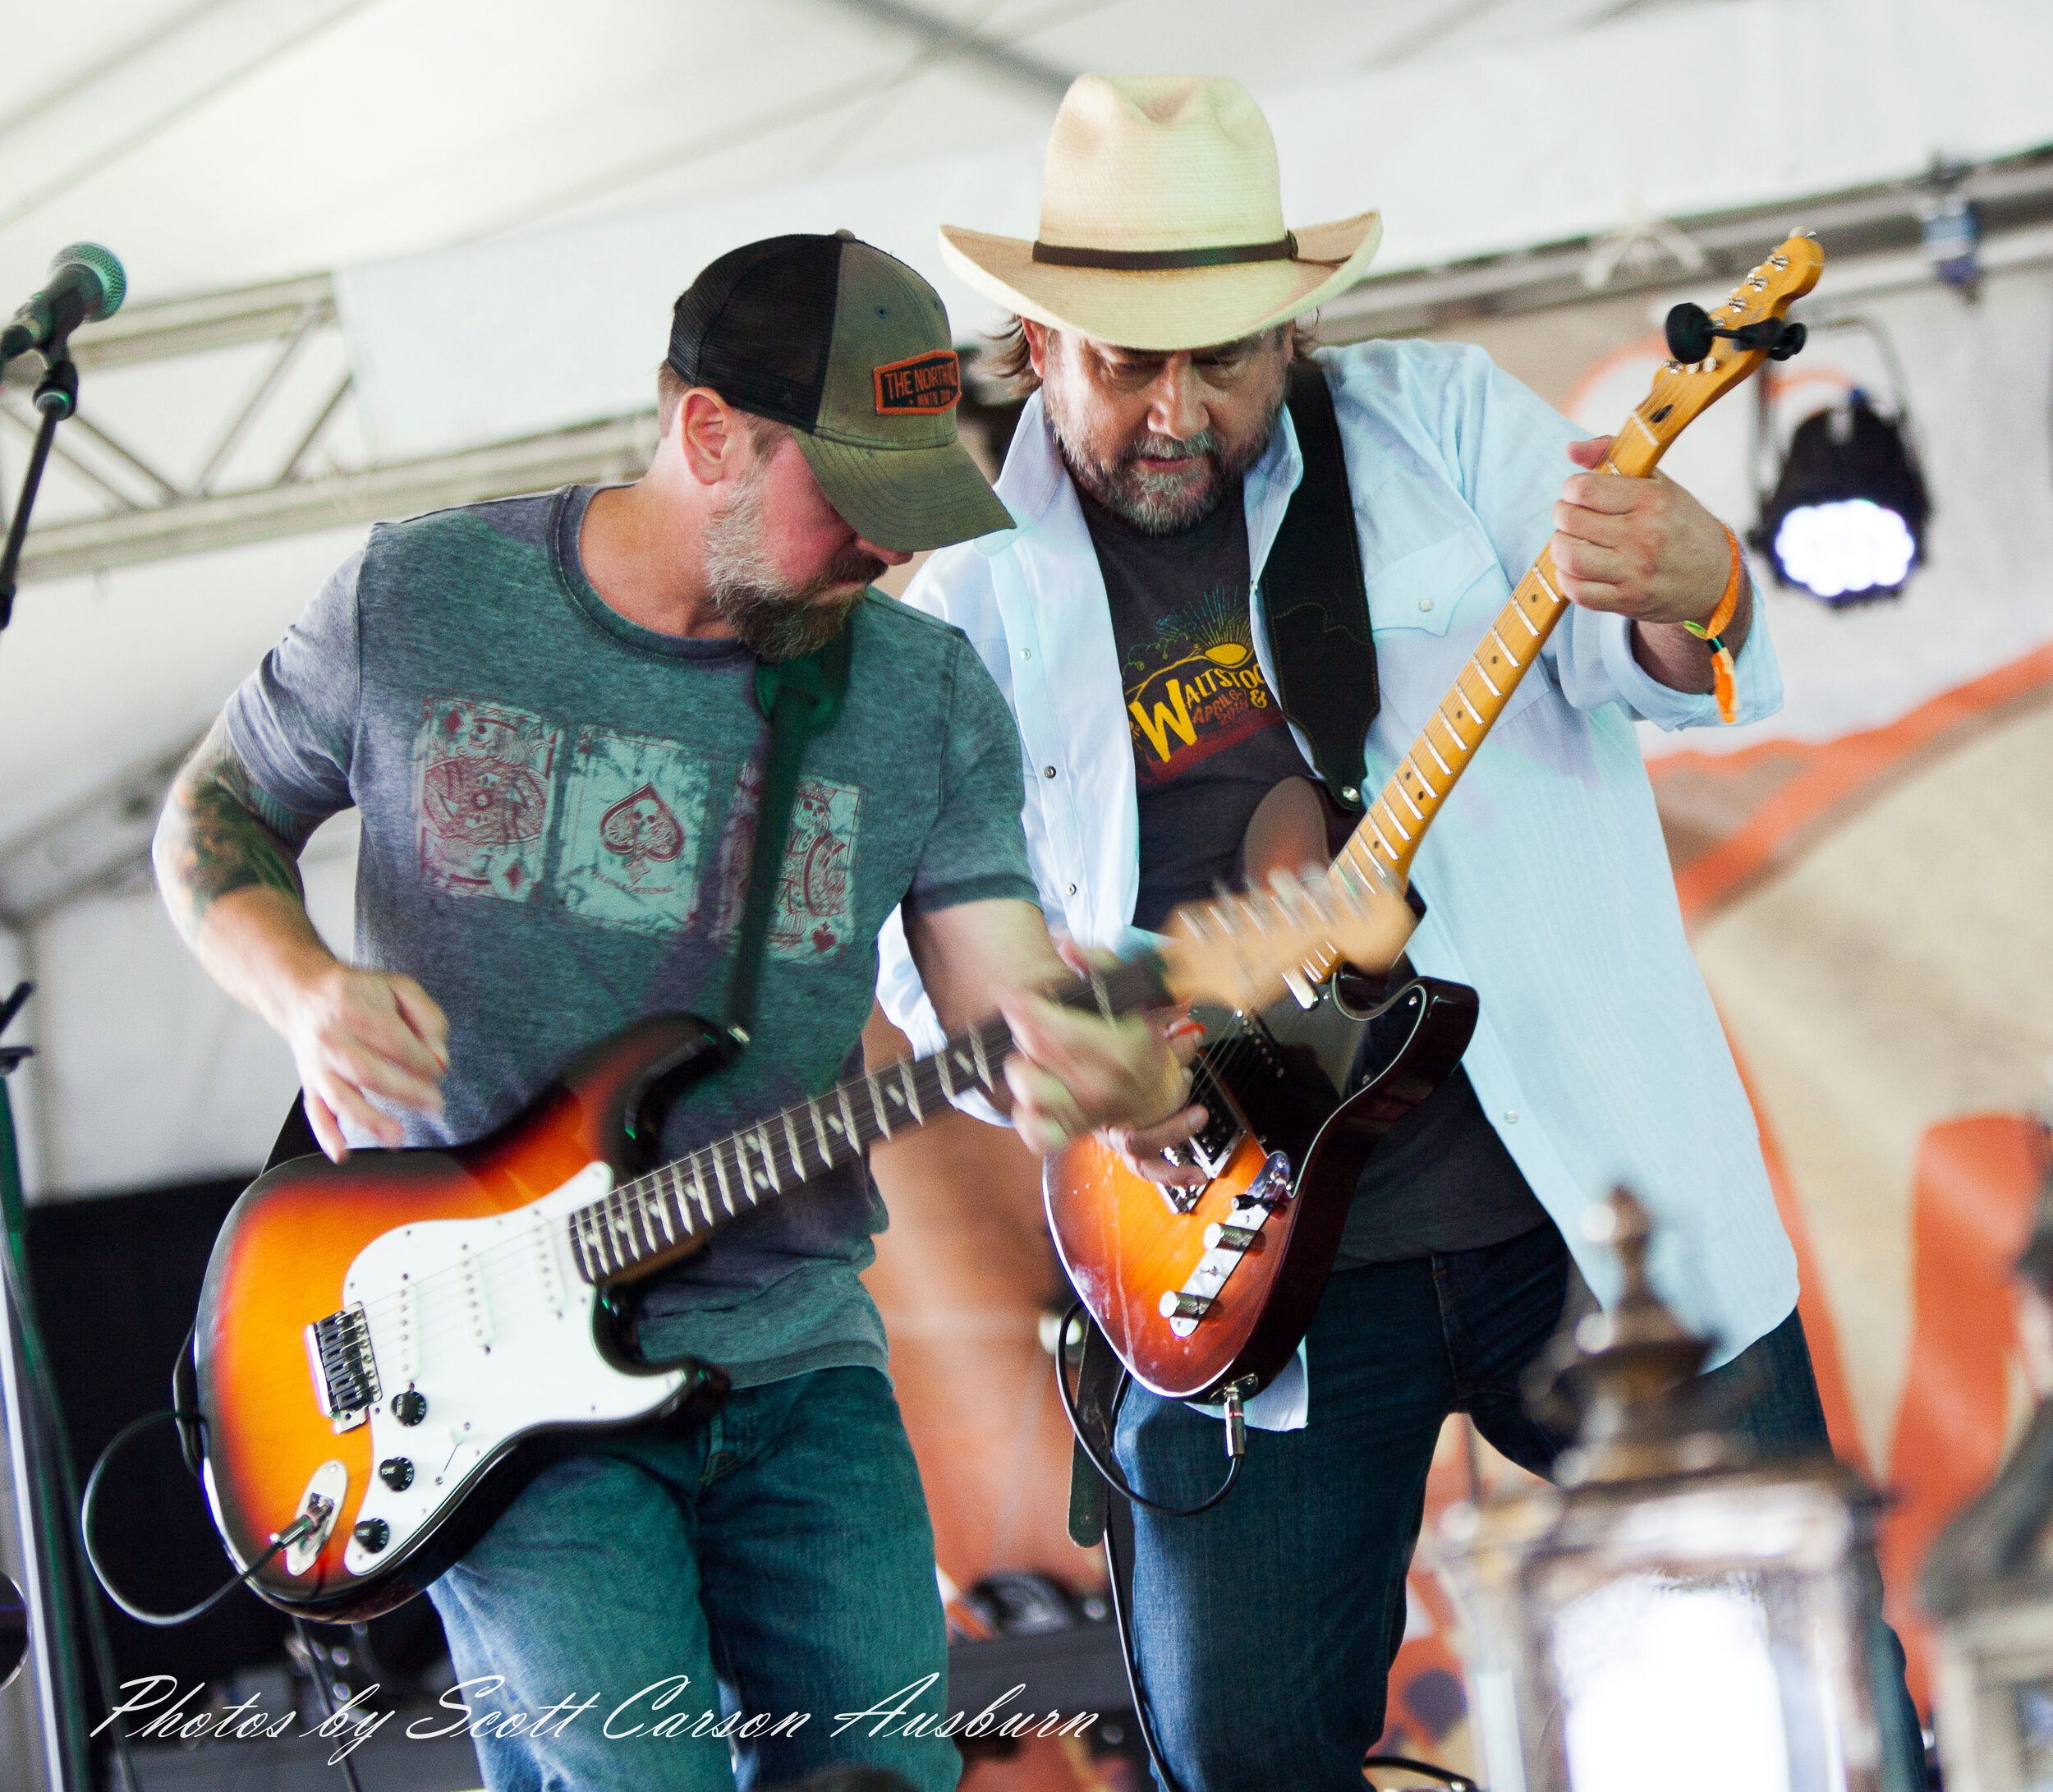 Waltstock and Barrel Festival, 5.17.19